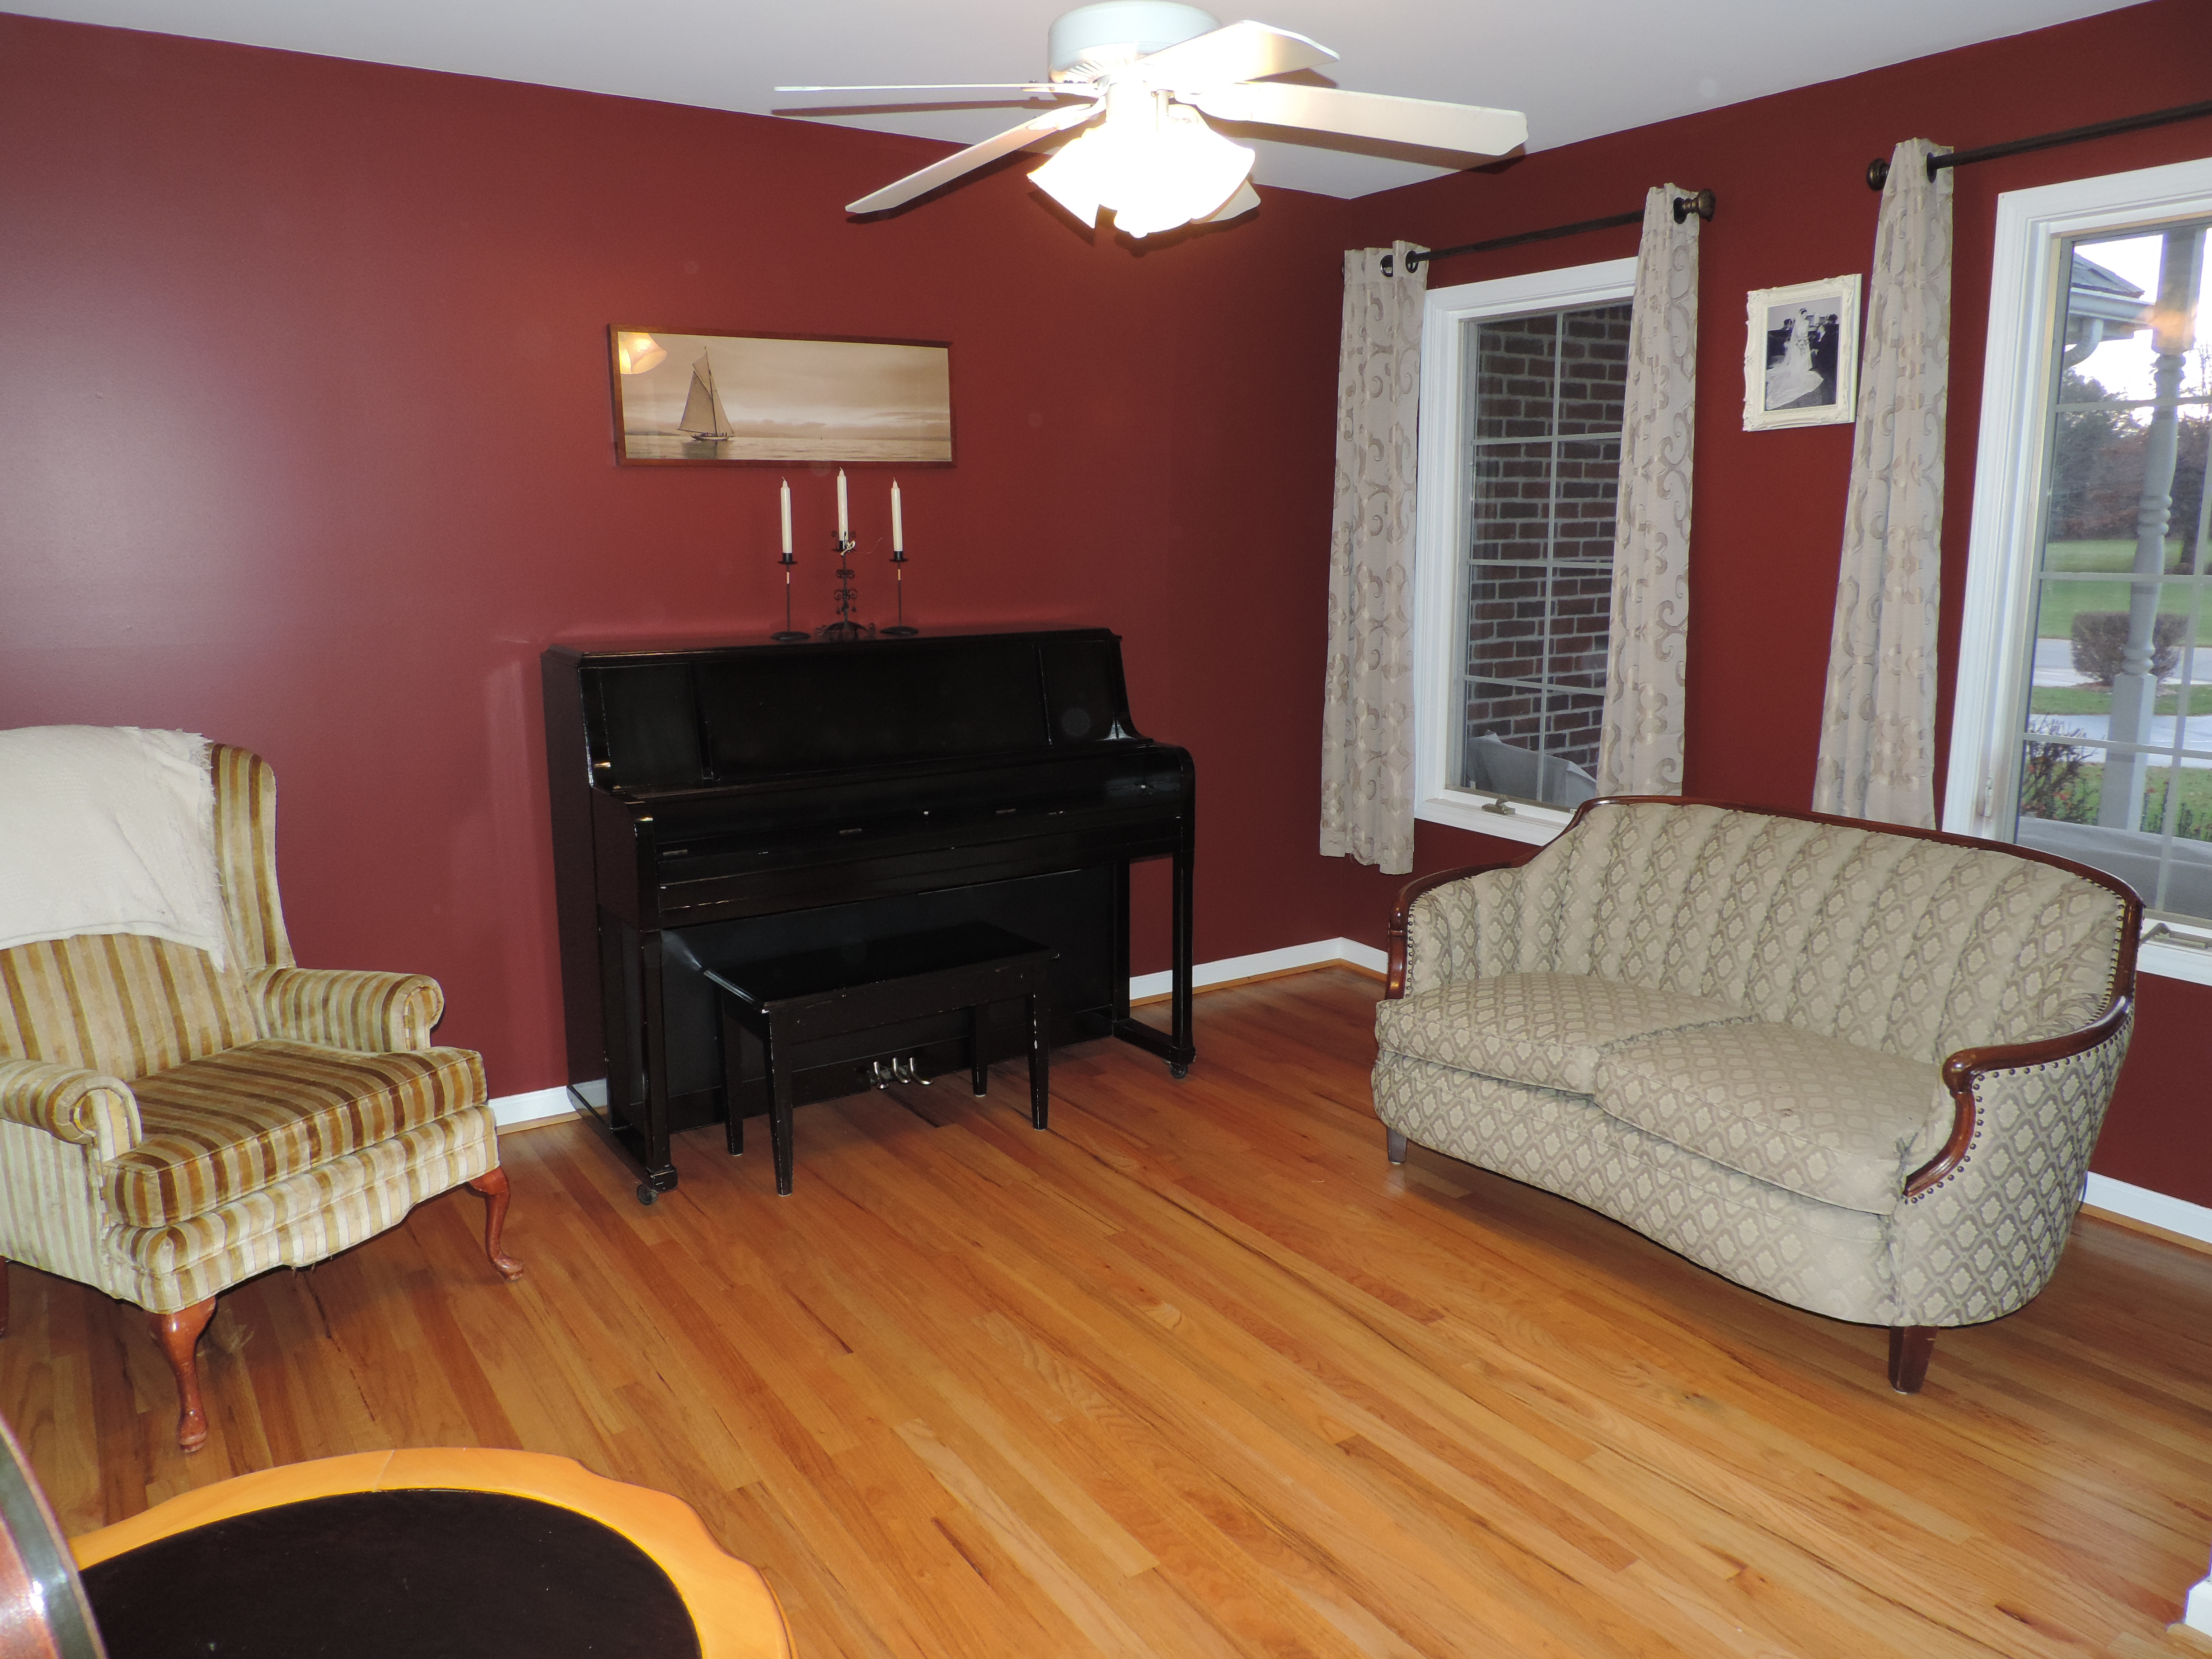 Michigan oakland county highland - Here I Have An Amazing Home For A Great Price This Home Is Spacious And Cozy It Provides Options And Is Great For Hosting Family Parties Sports Events